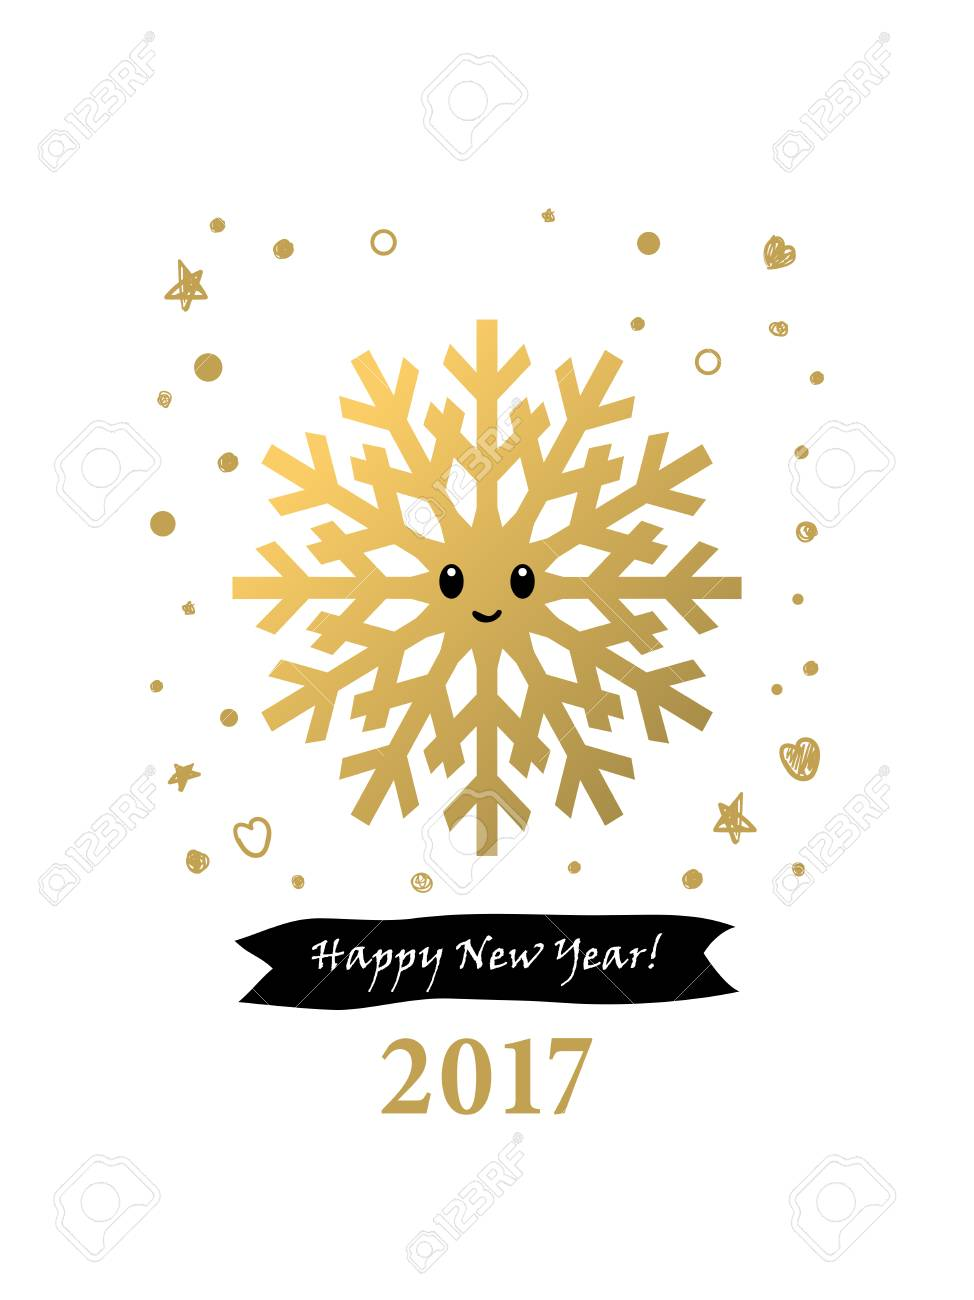 2017 Happy New Year Card Or Background.Trendy Style With Hand ...